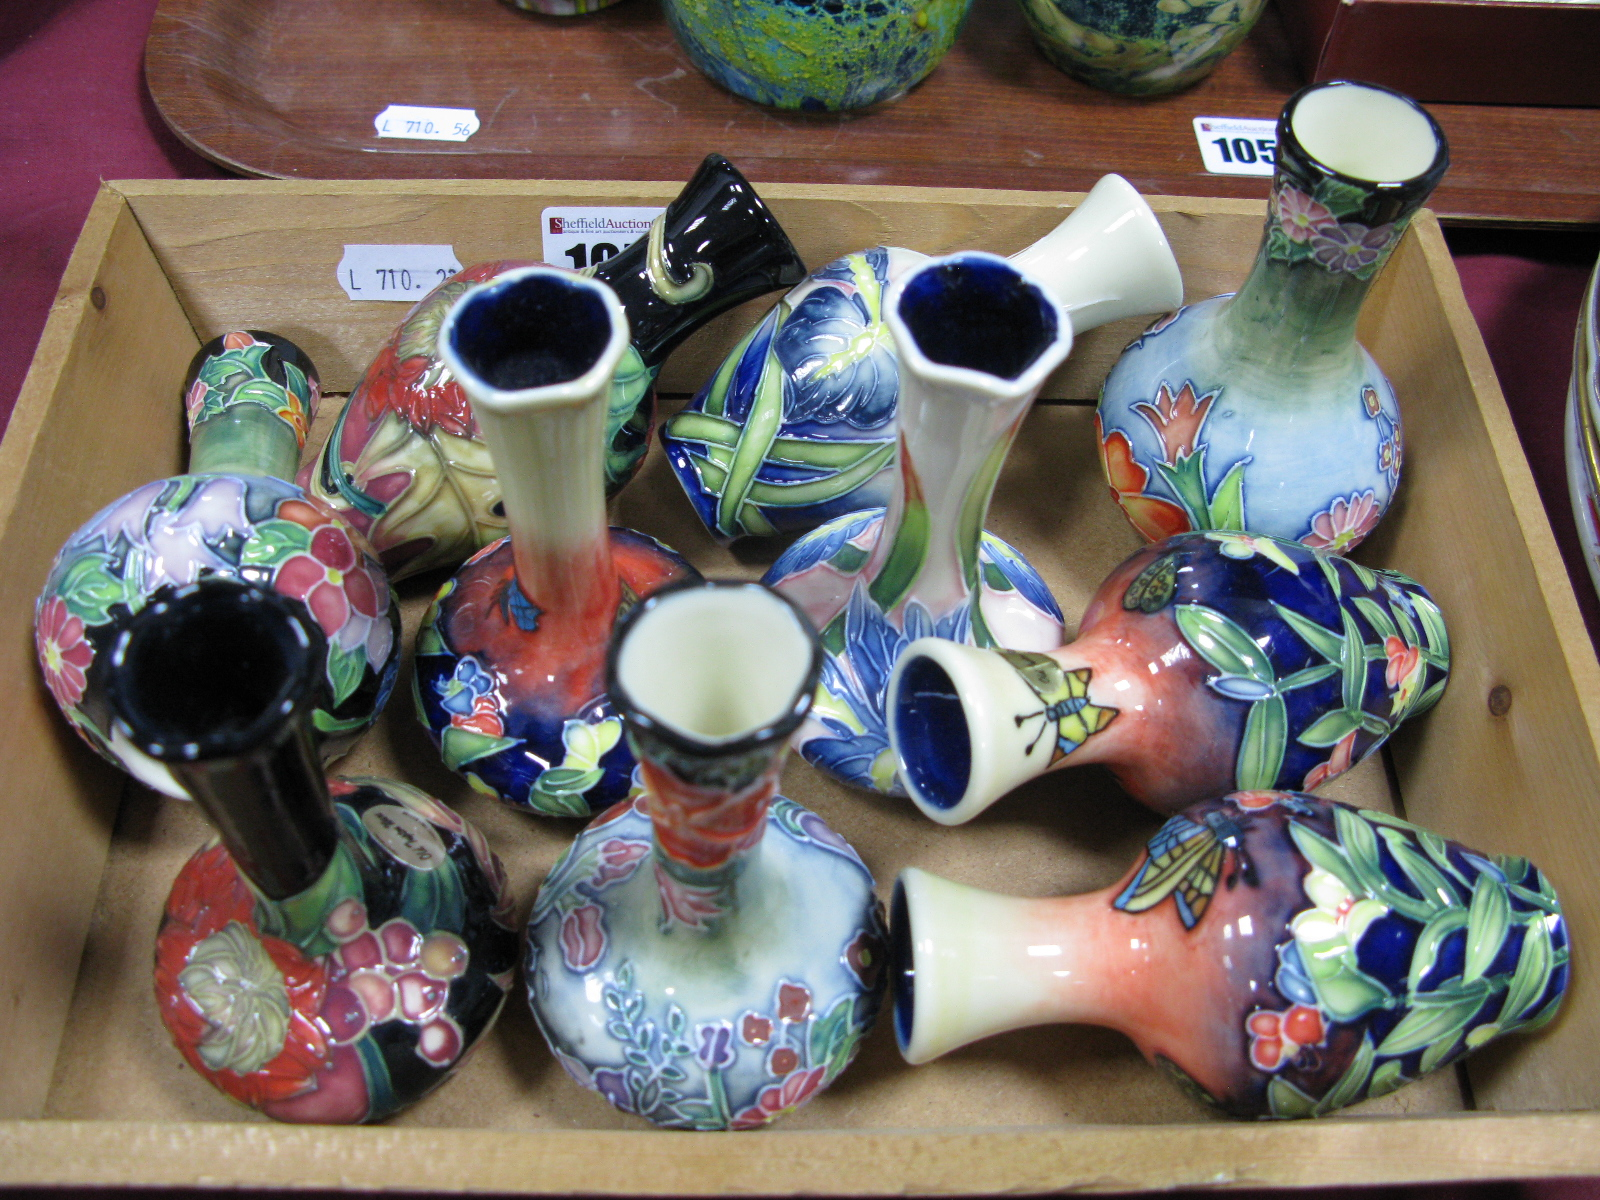 Lot 1057 - Ten Old Tupton Ware Pottery Vases, with varying floral designs, 10cm high.